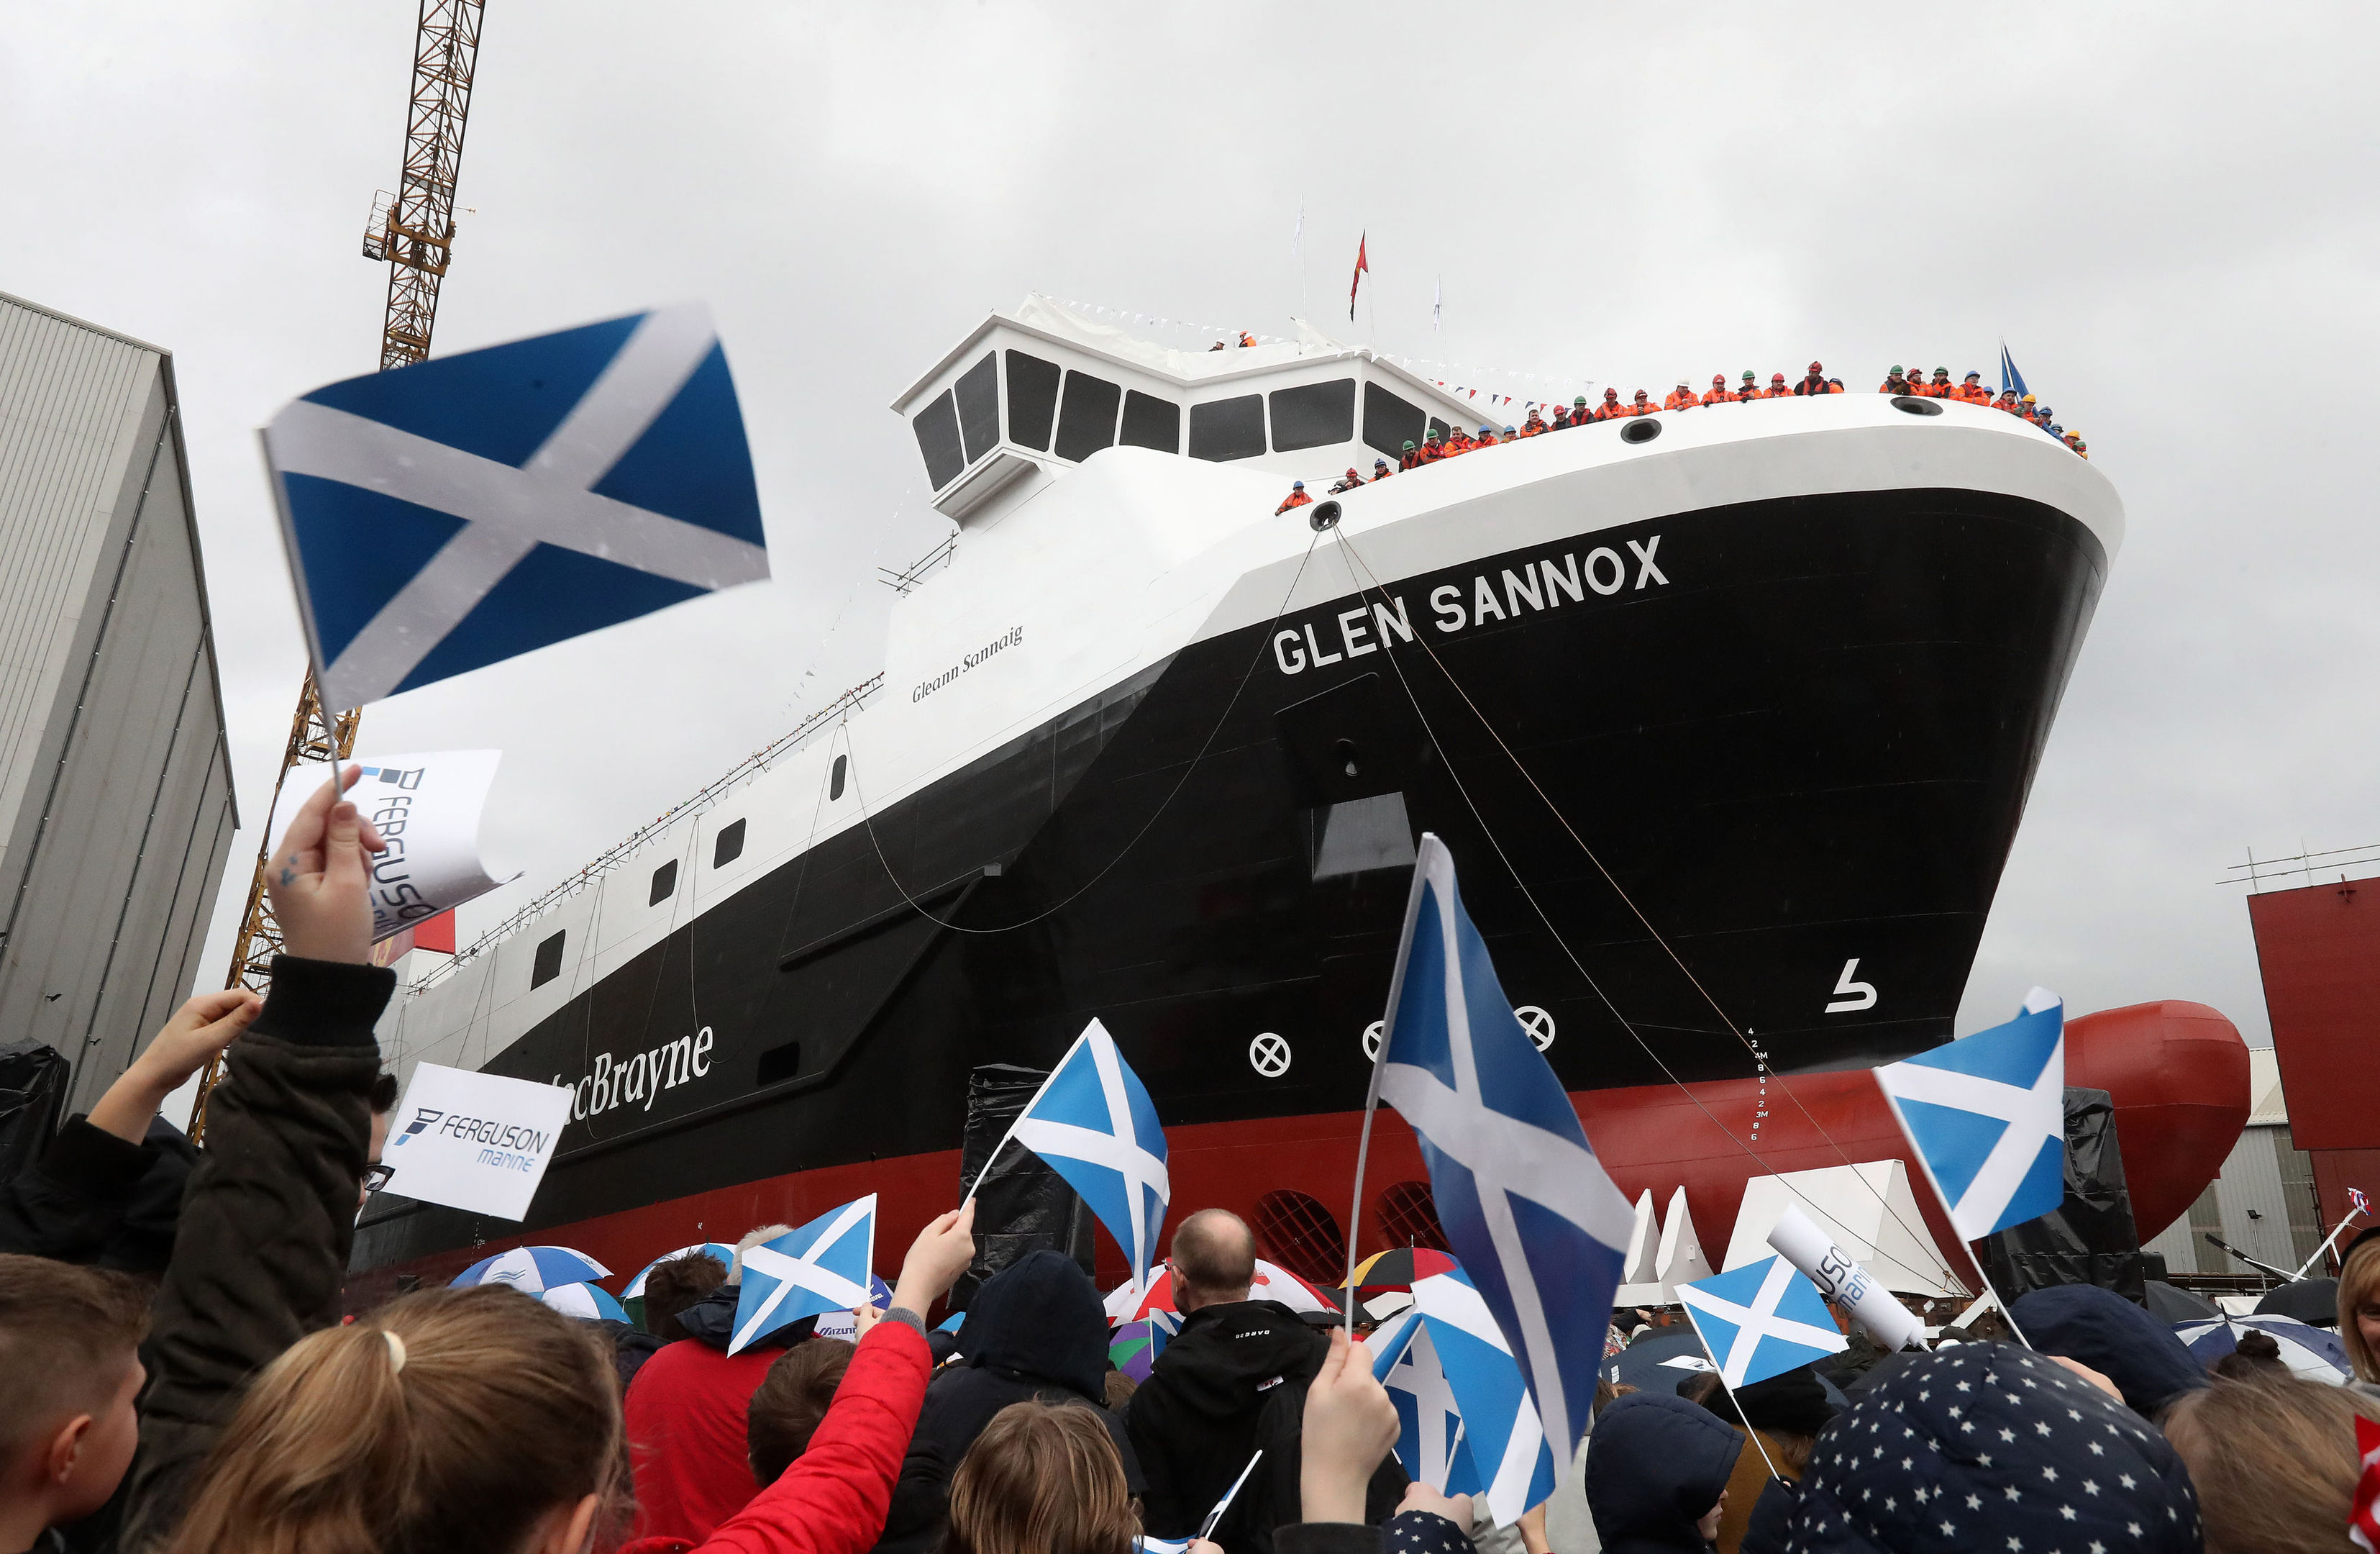 The launch of MV Glen Sannox, the UK's first LNG ferry, at Ferguson Marine Engineering in Port Glasgow (Andrew Milligan/PA Wire)